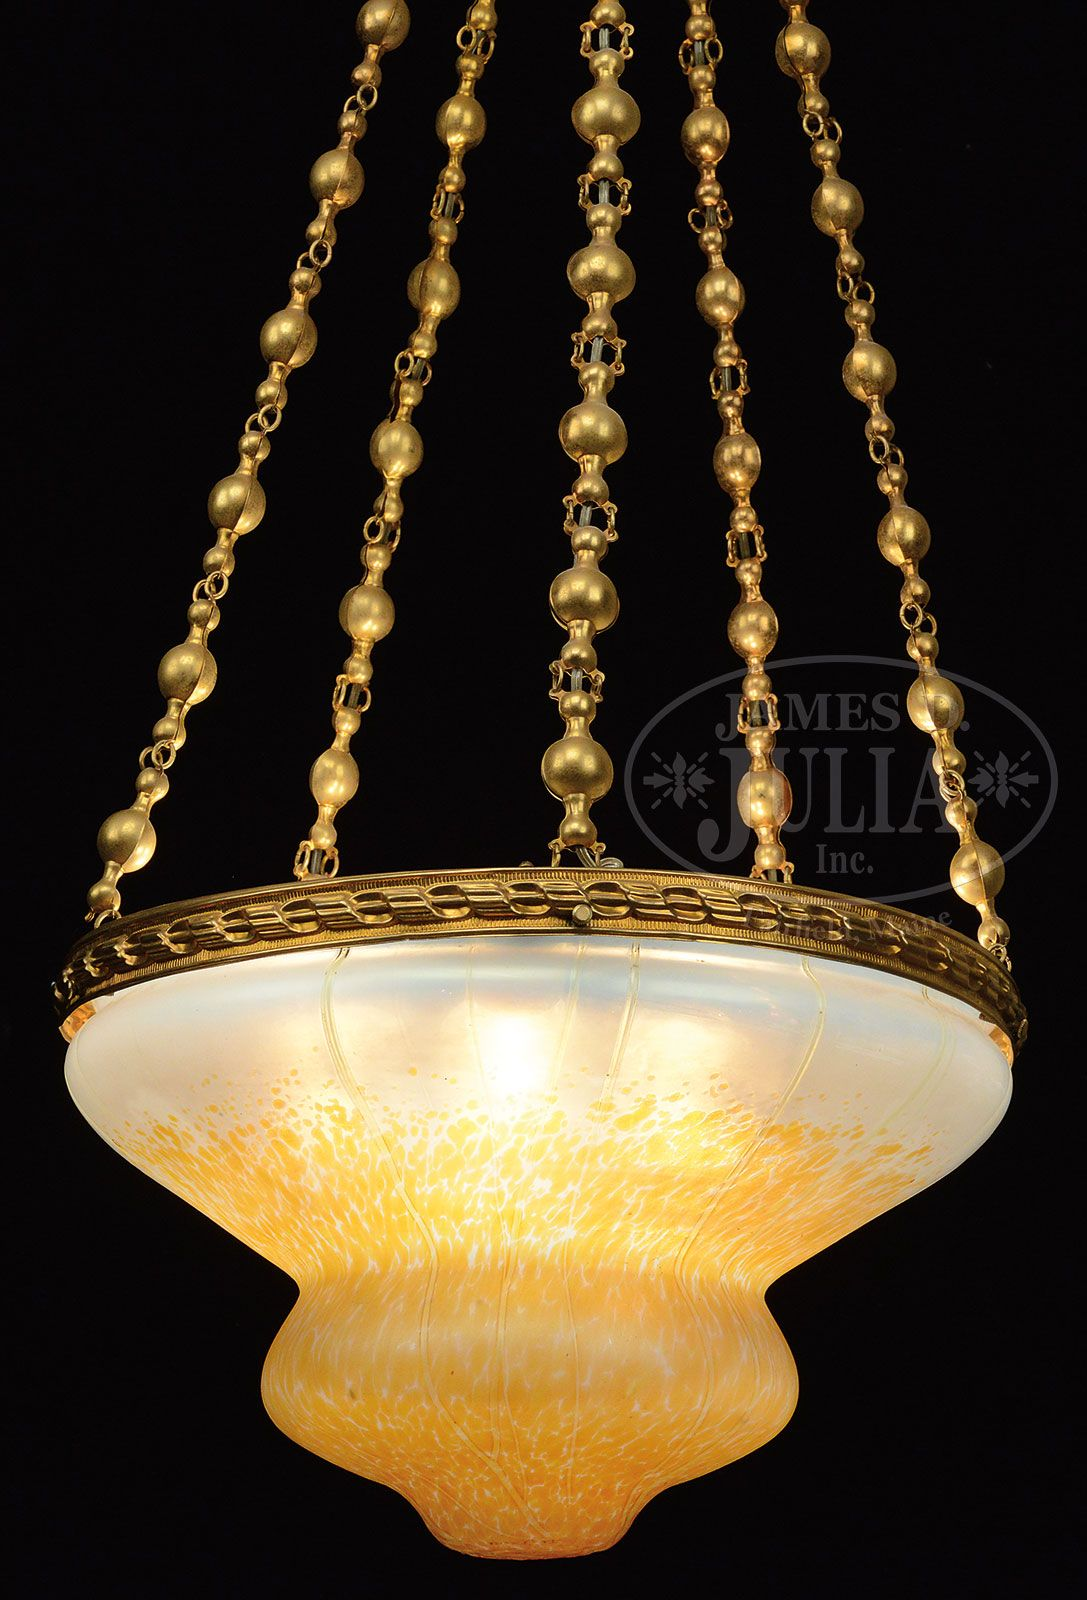 Loetz chandelier loetz chandelier has stamped brass ball chains loetz chandelier loetz chandelier has stamped brass ball chains descending from the spun brass ceiling cap supporting the stamped brass shade ring arubaitofo Gallery